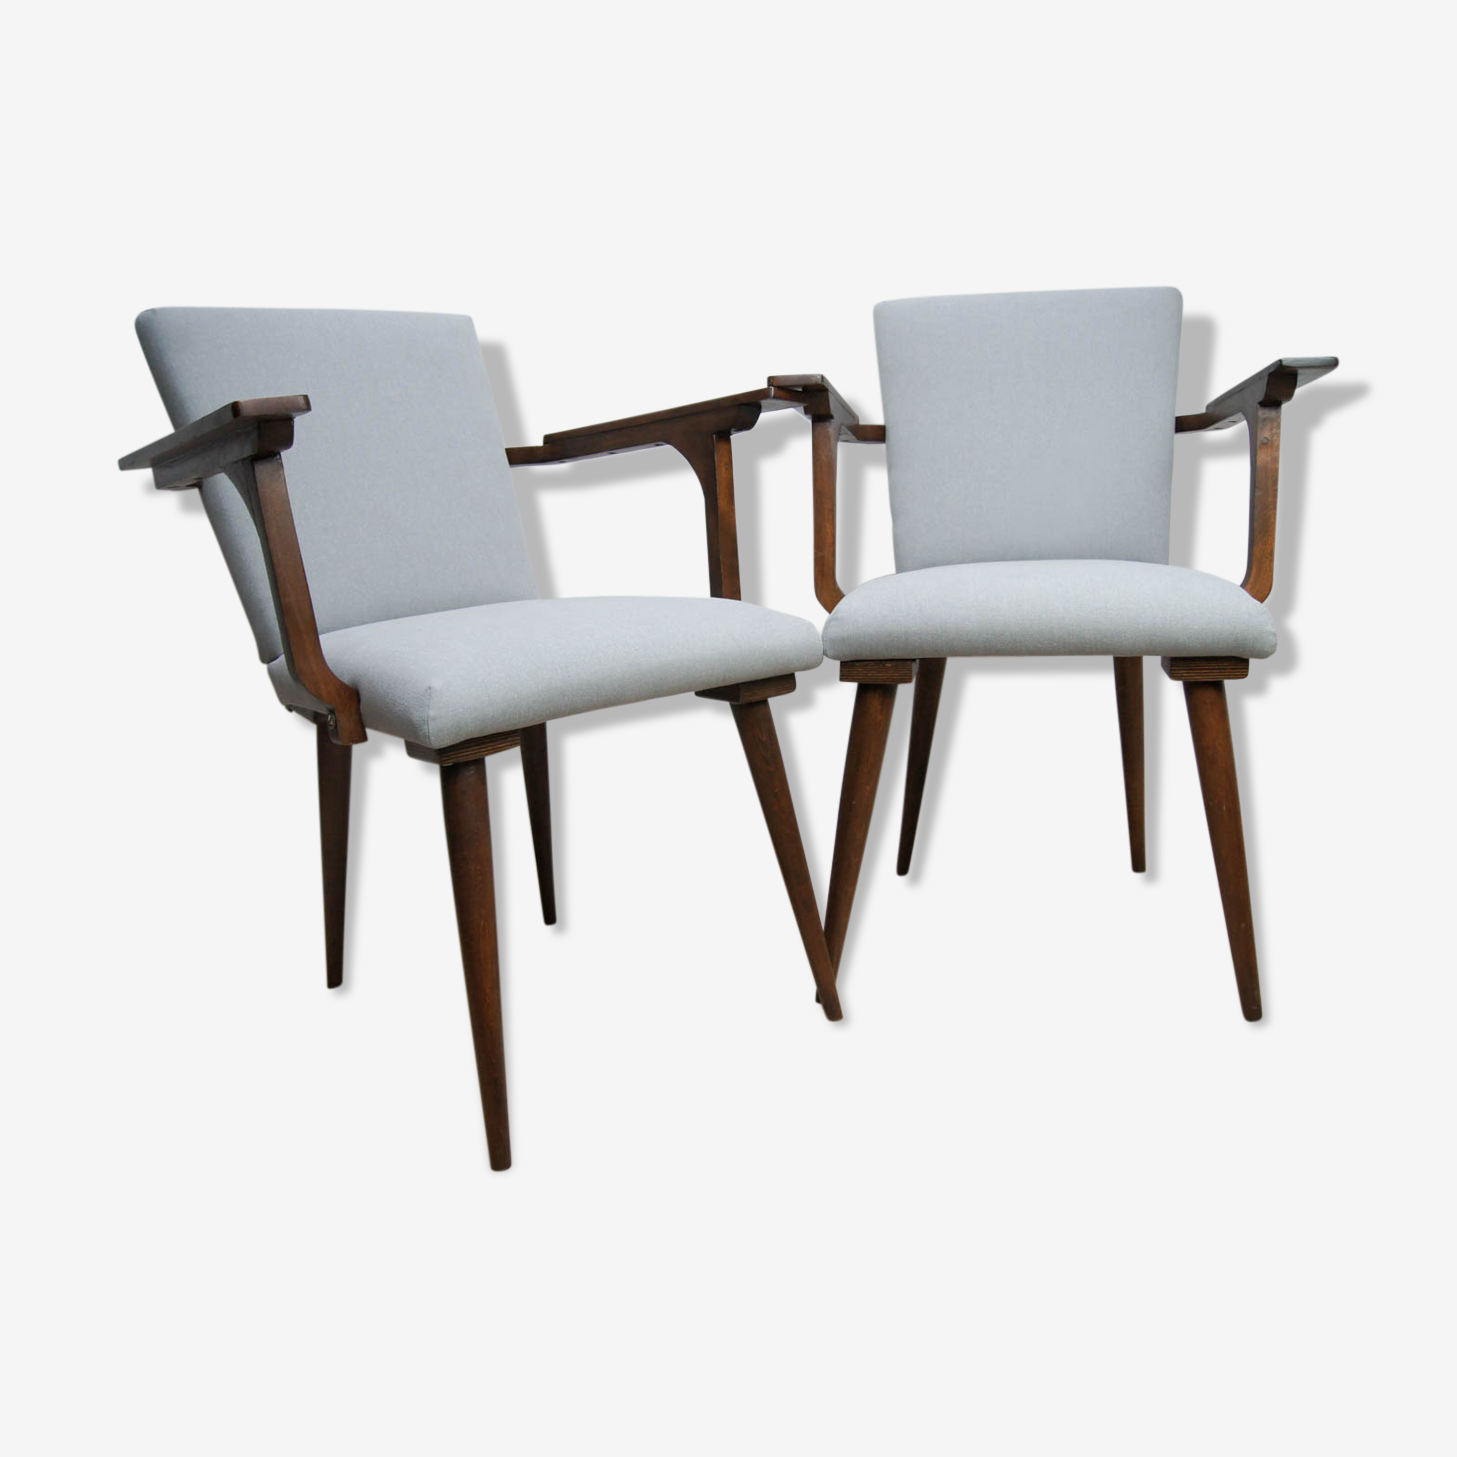 Pair of gray chairs Mid Century modernist 1970